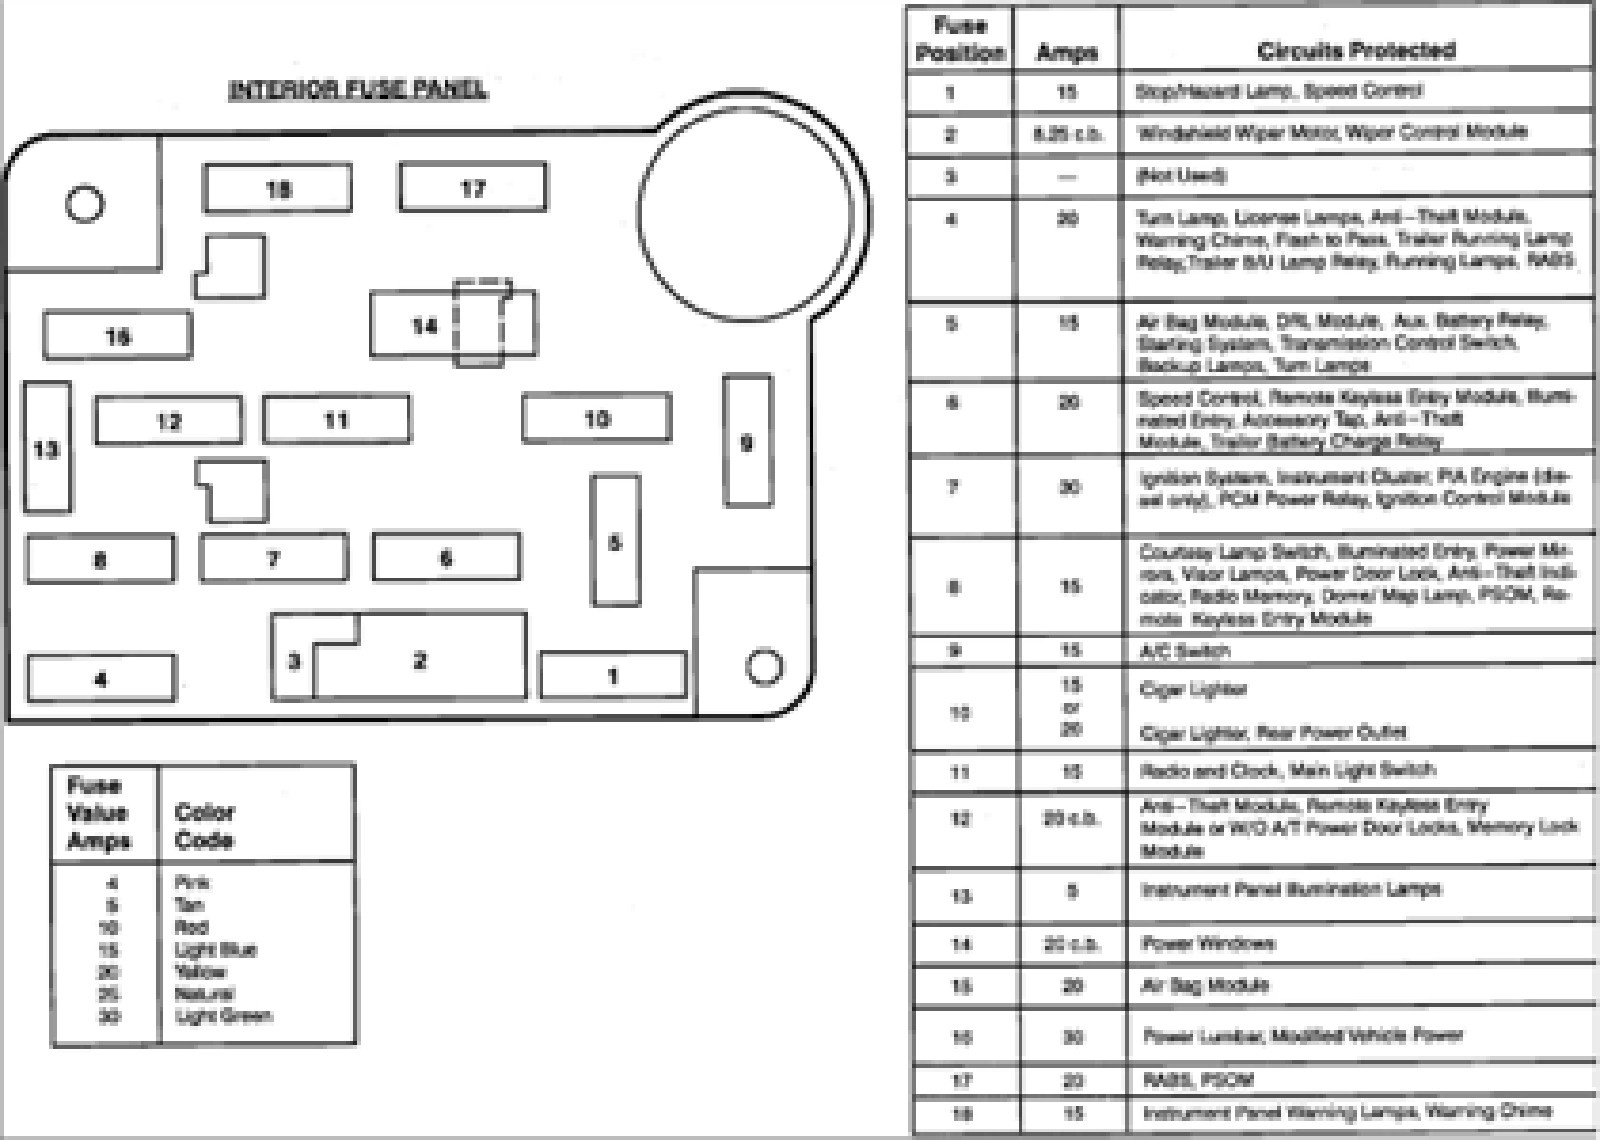 95 chrysler lebaron wiring diagram wiring diagram1994 chrysler lebaron fuse box diagram www casei store \\u2022